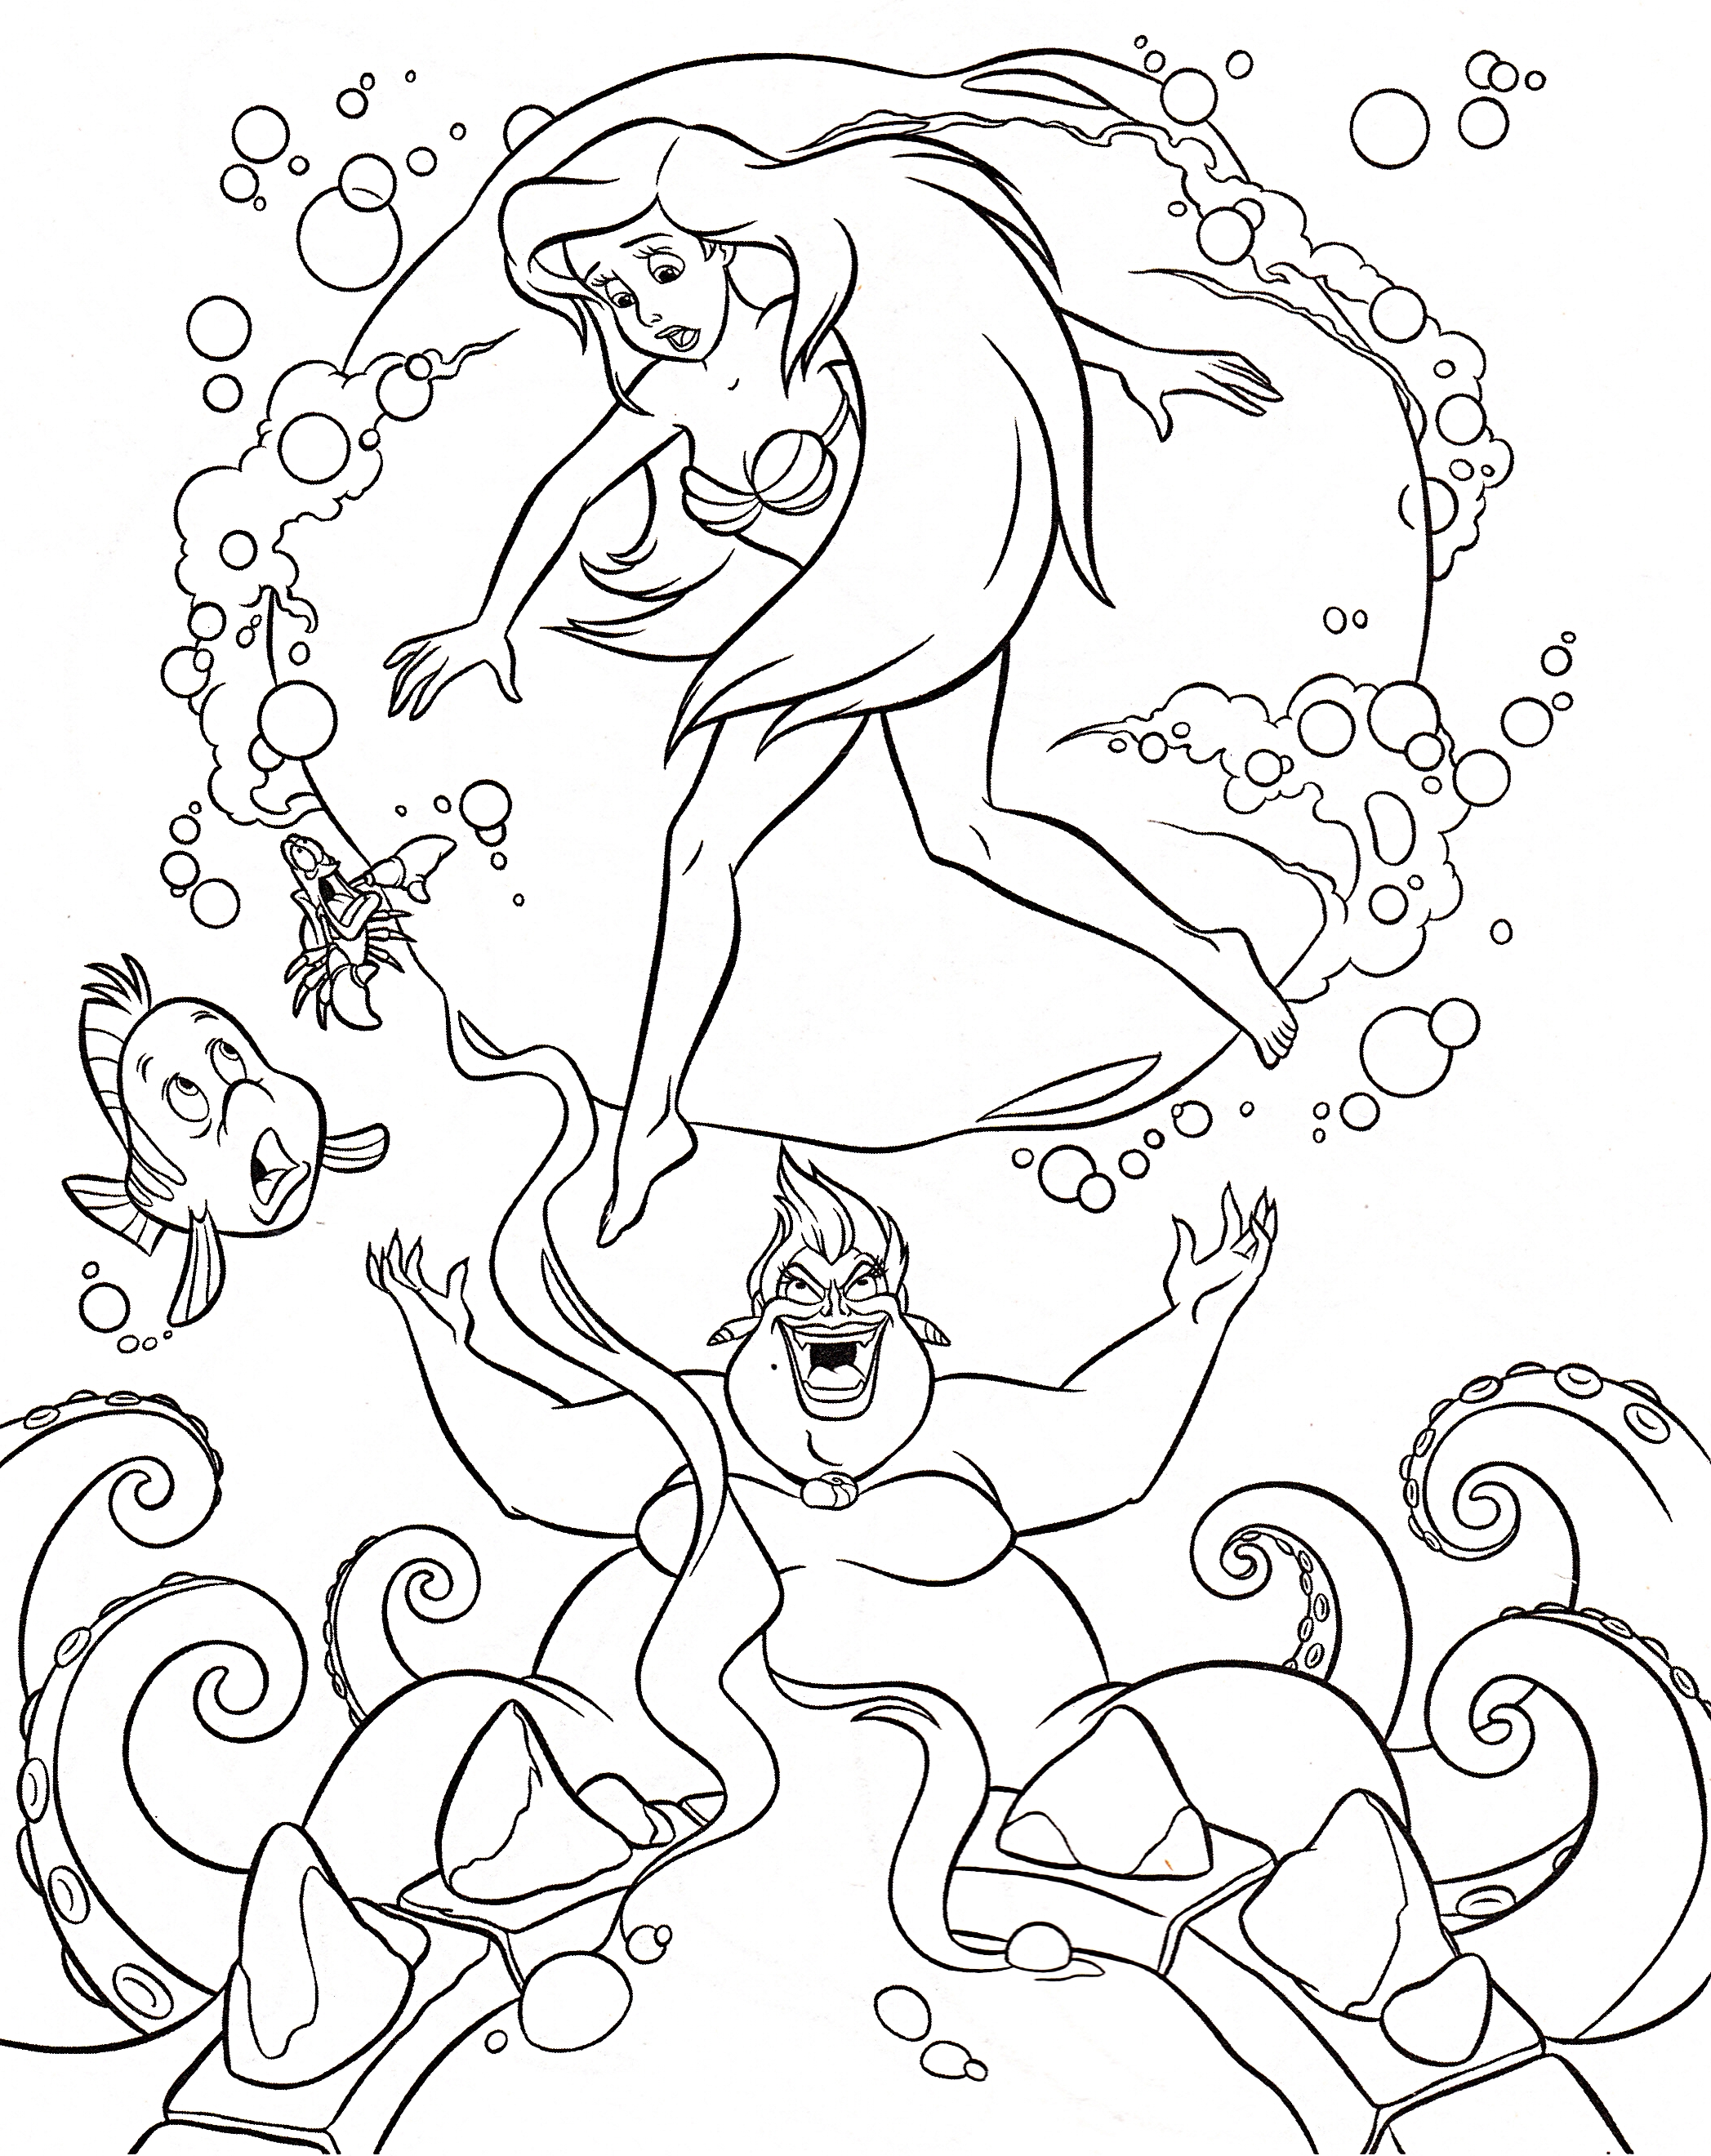 cauldron coloring page -